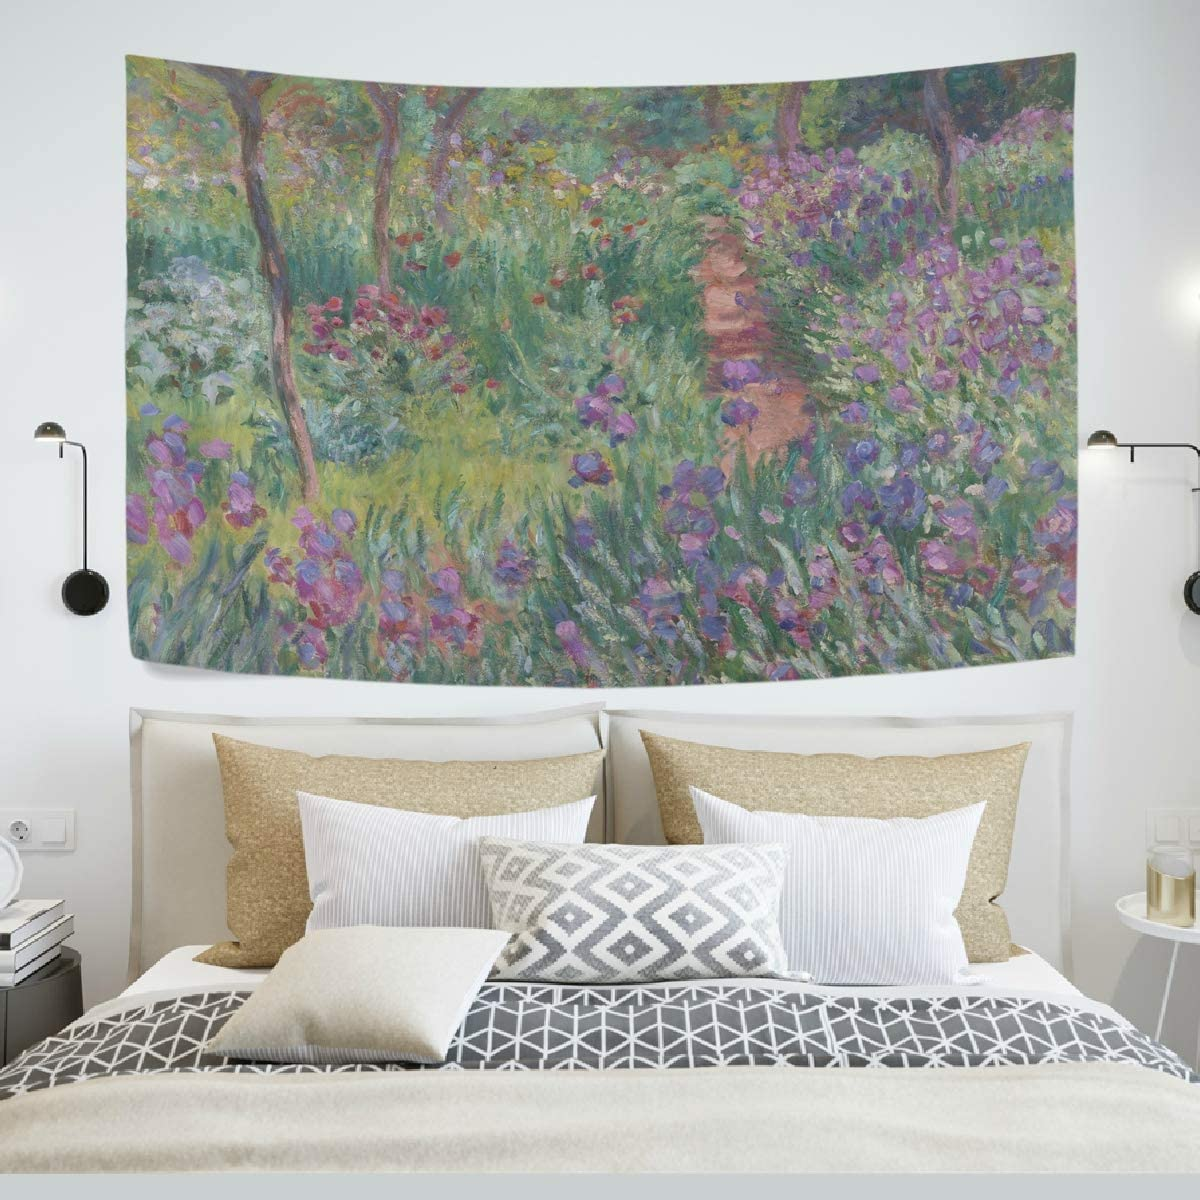 AHOMY Tapestry Wall Hanging, Monet's Iris Garden at Giverny Bedspread Picnic Bedsheet Blanket Wall Art Tapestry 60 X 40 inch